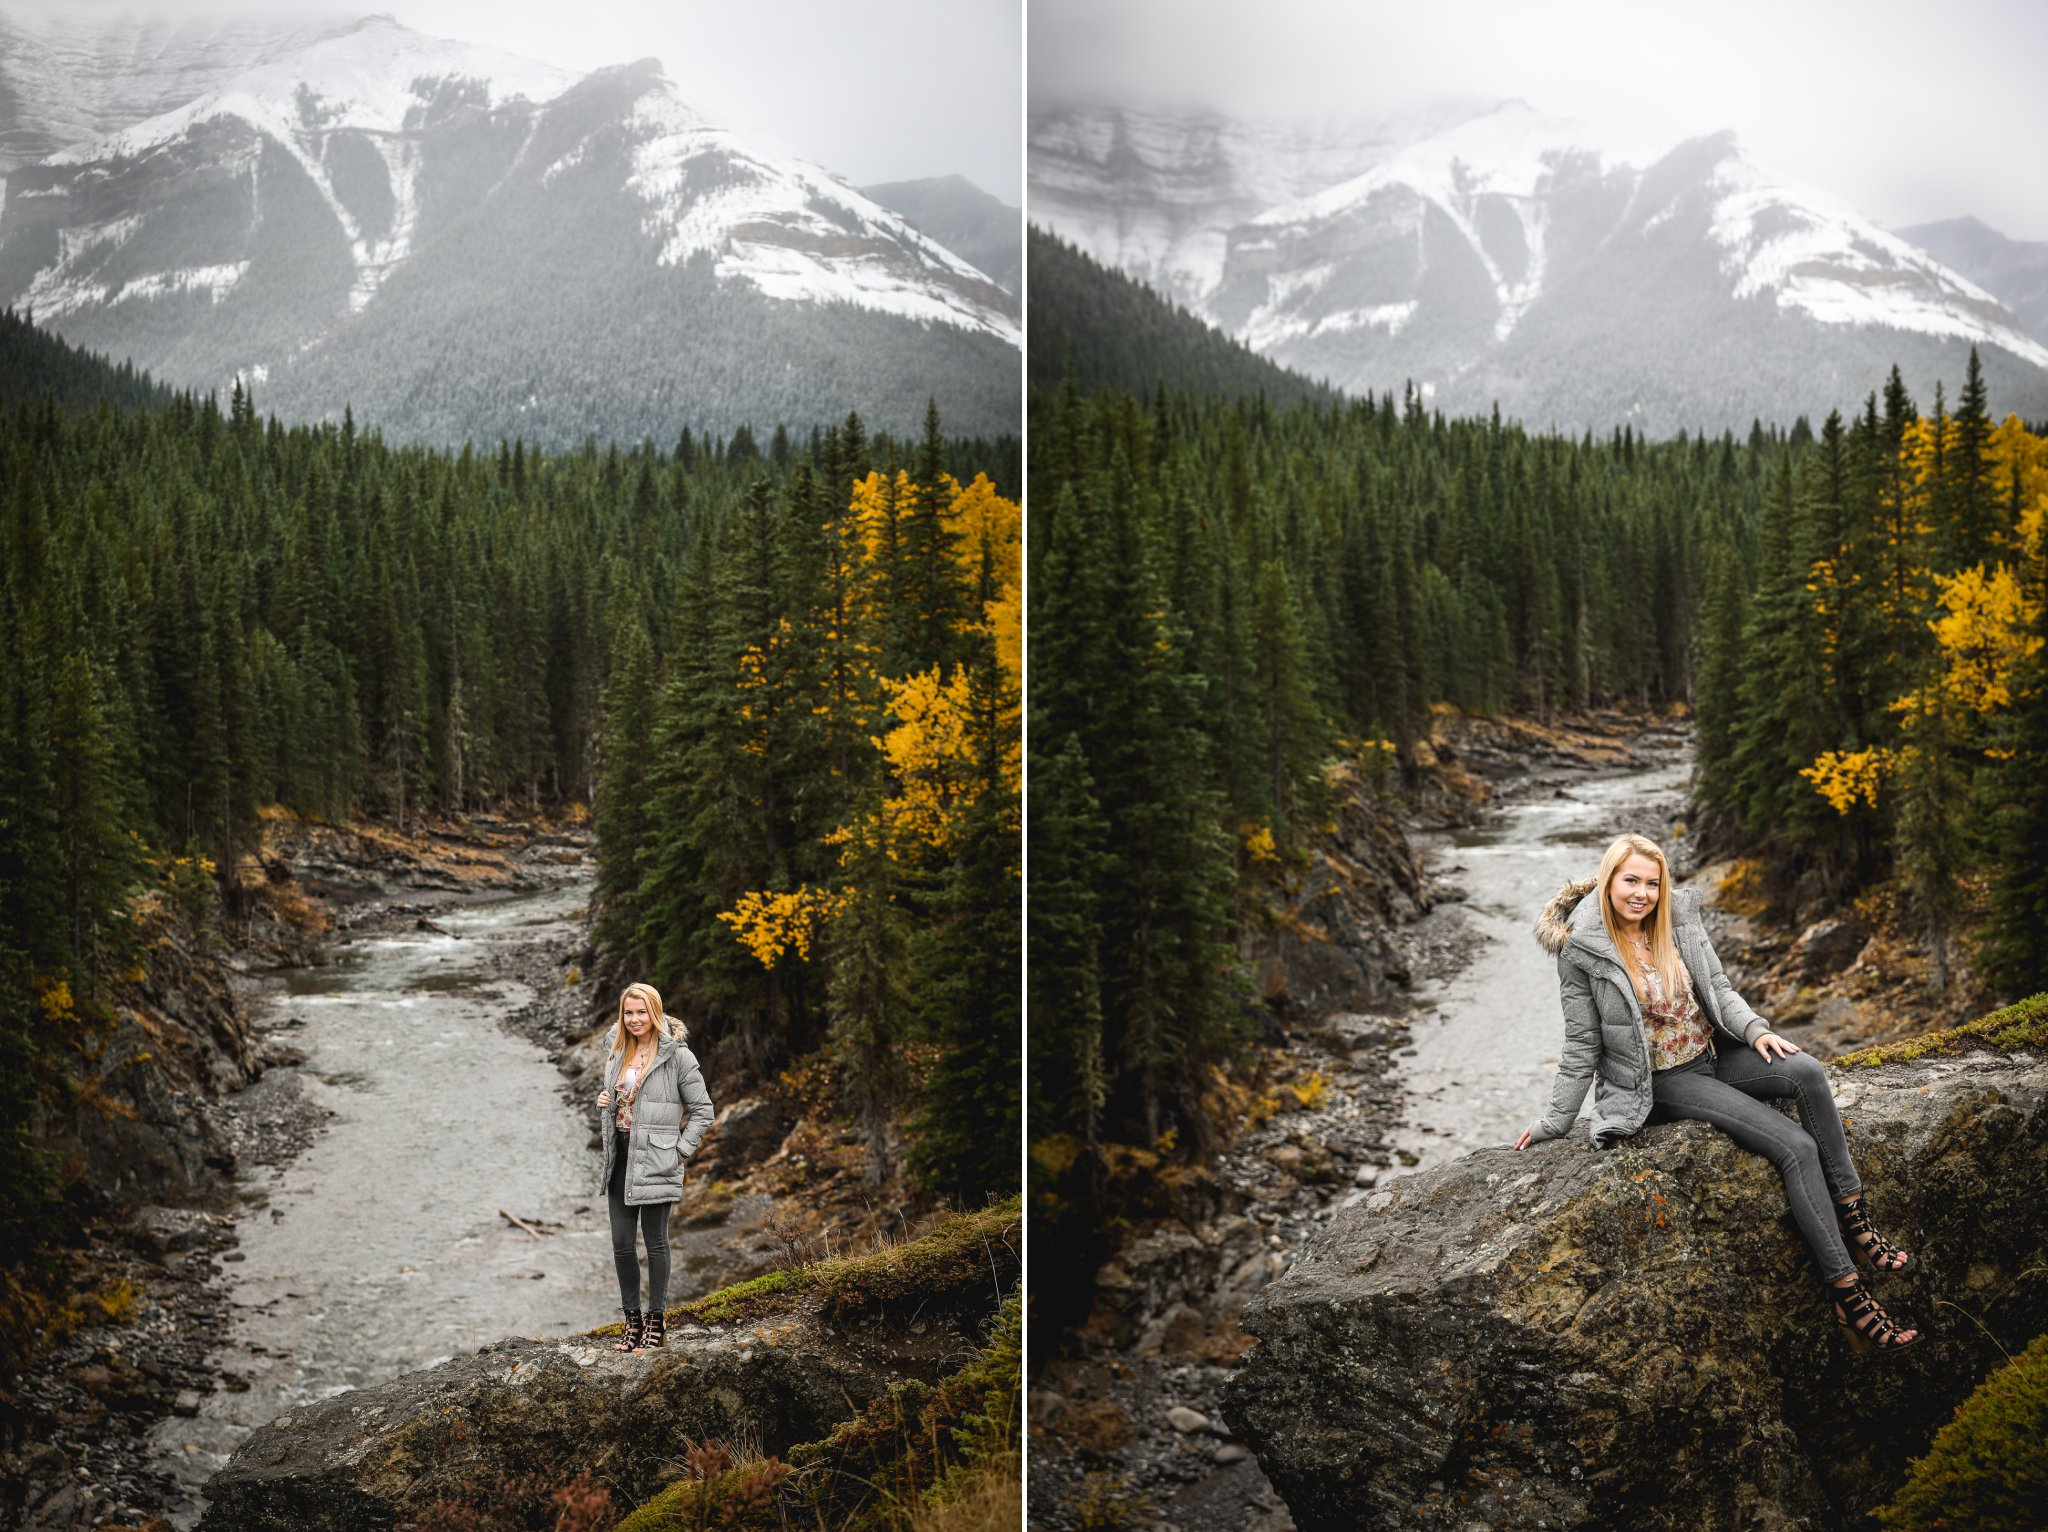 AshleyDaphnePhotography Calgary Photographer Wedding Family Senior Portraits Rocky Mountains Sheep River Falls Autumn Fall_0003.jpg